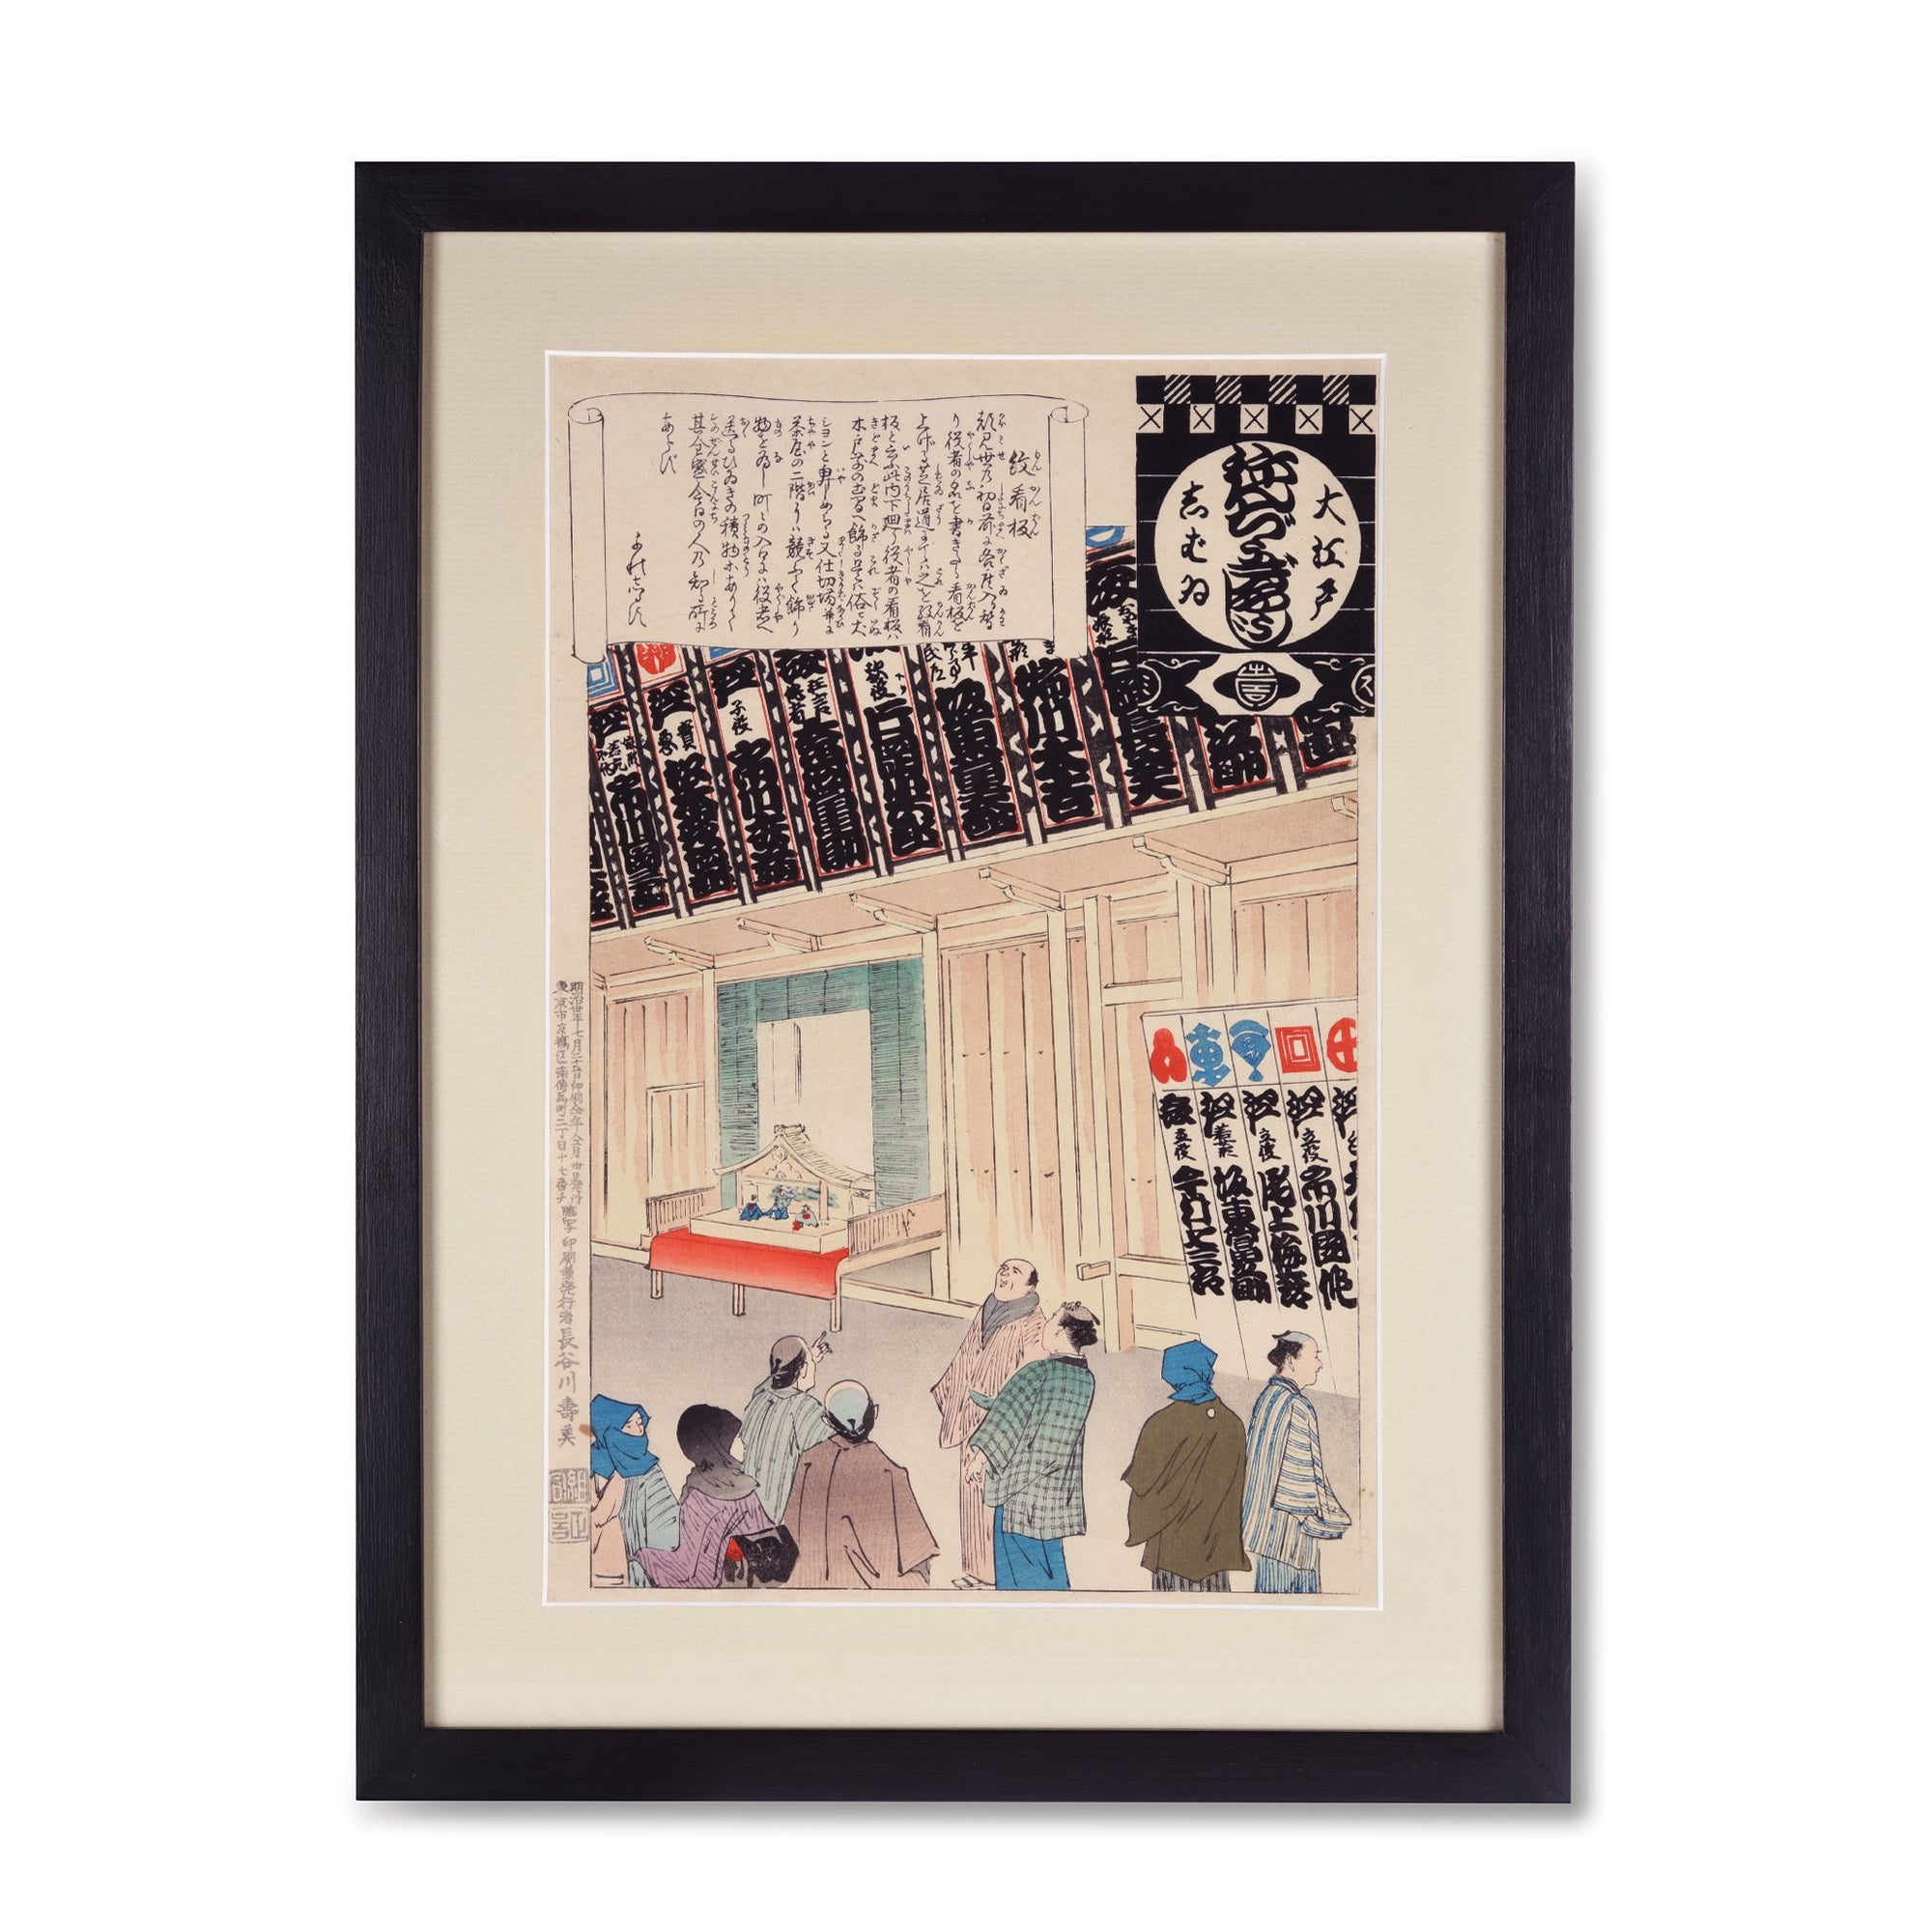 Framed Japanese Wood Block Prints - 19thC | Indigo Oriental Antiques